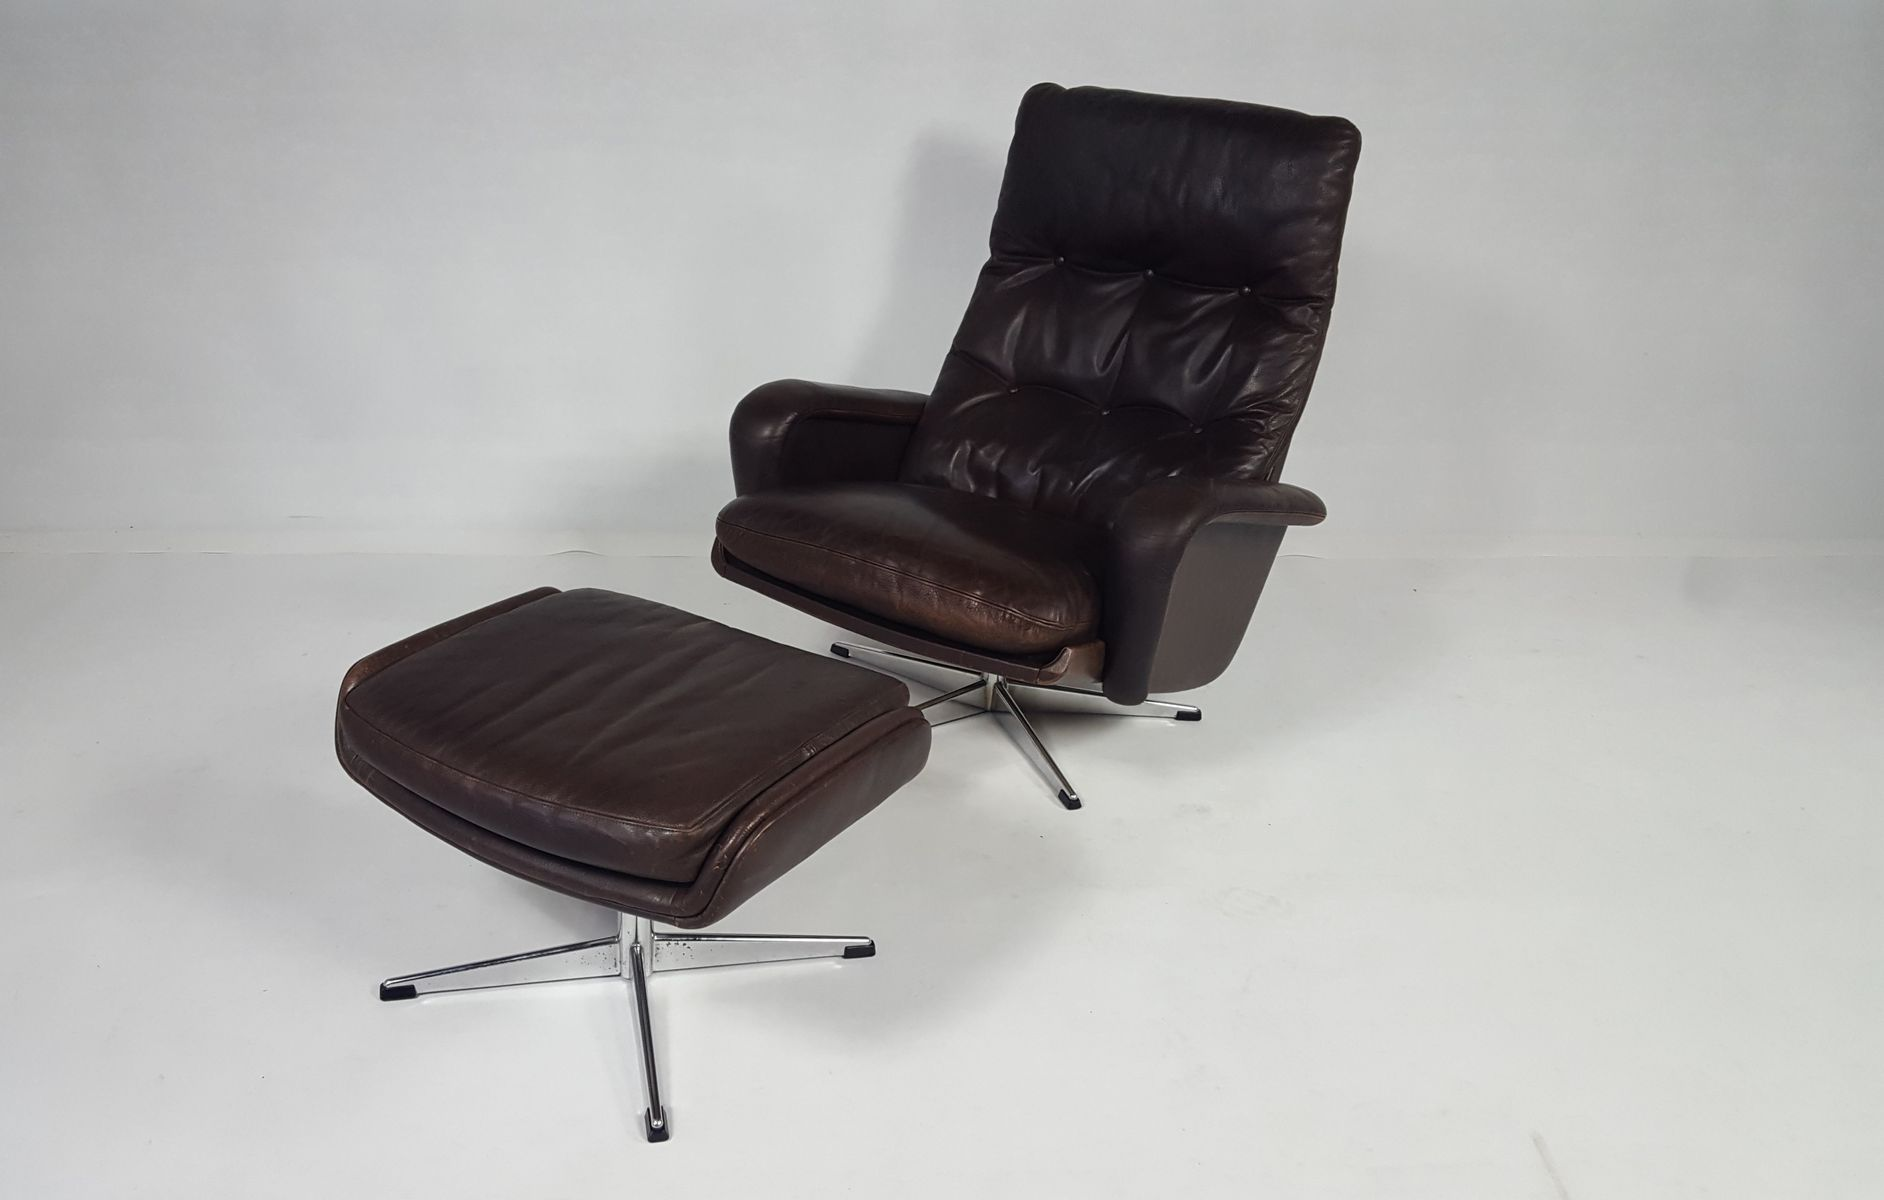 Superior Leather Swivel Chair With Ottoman, 1970s